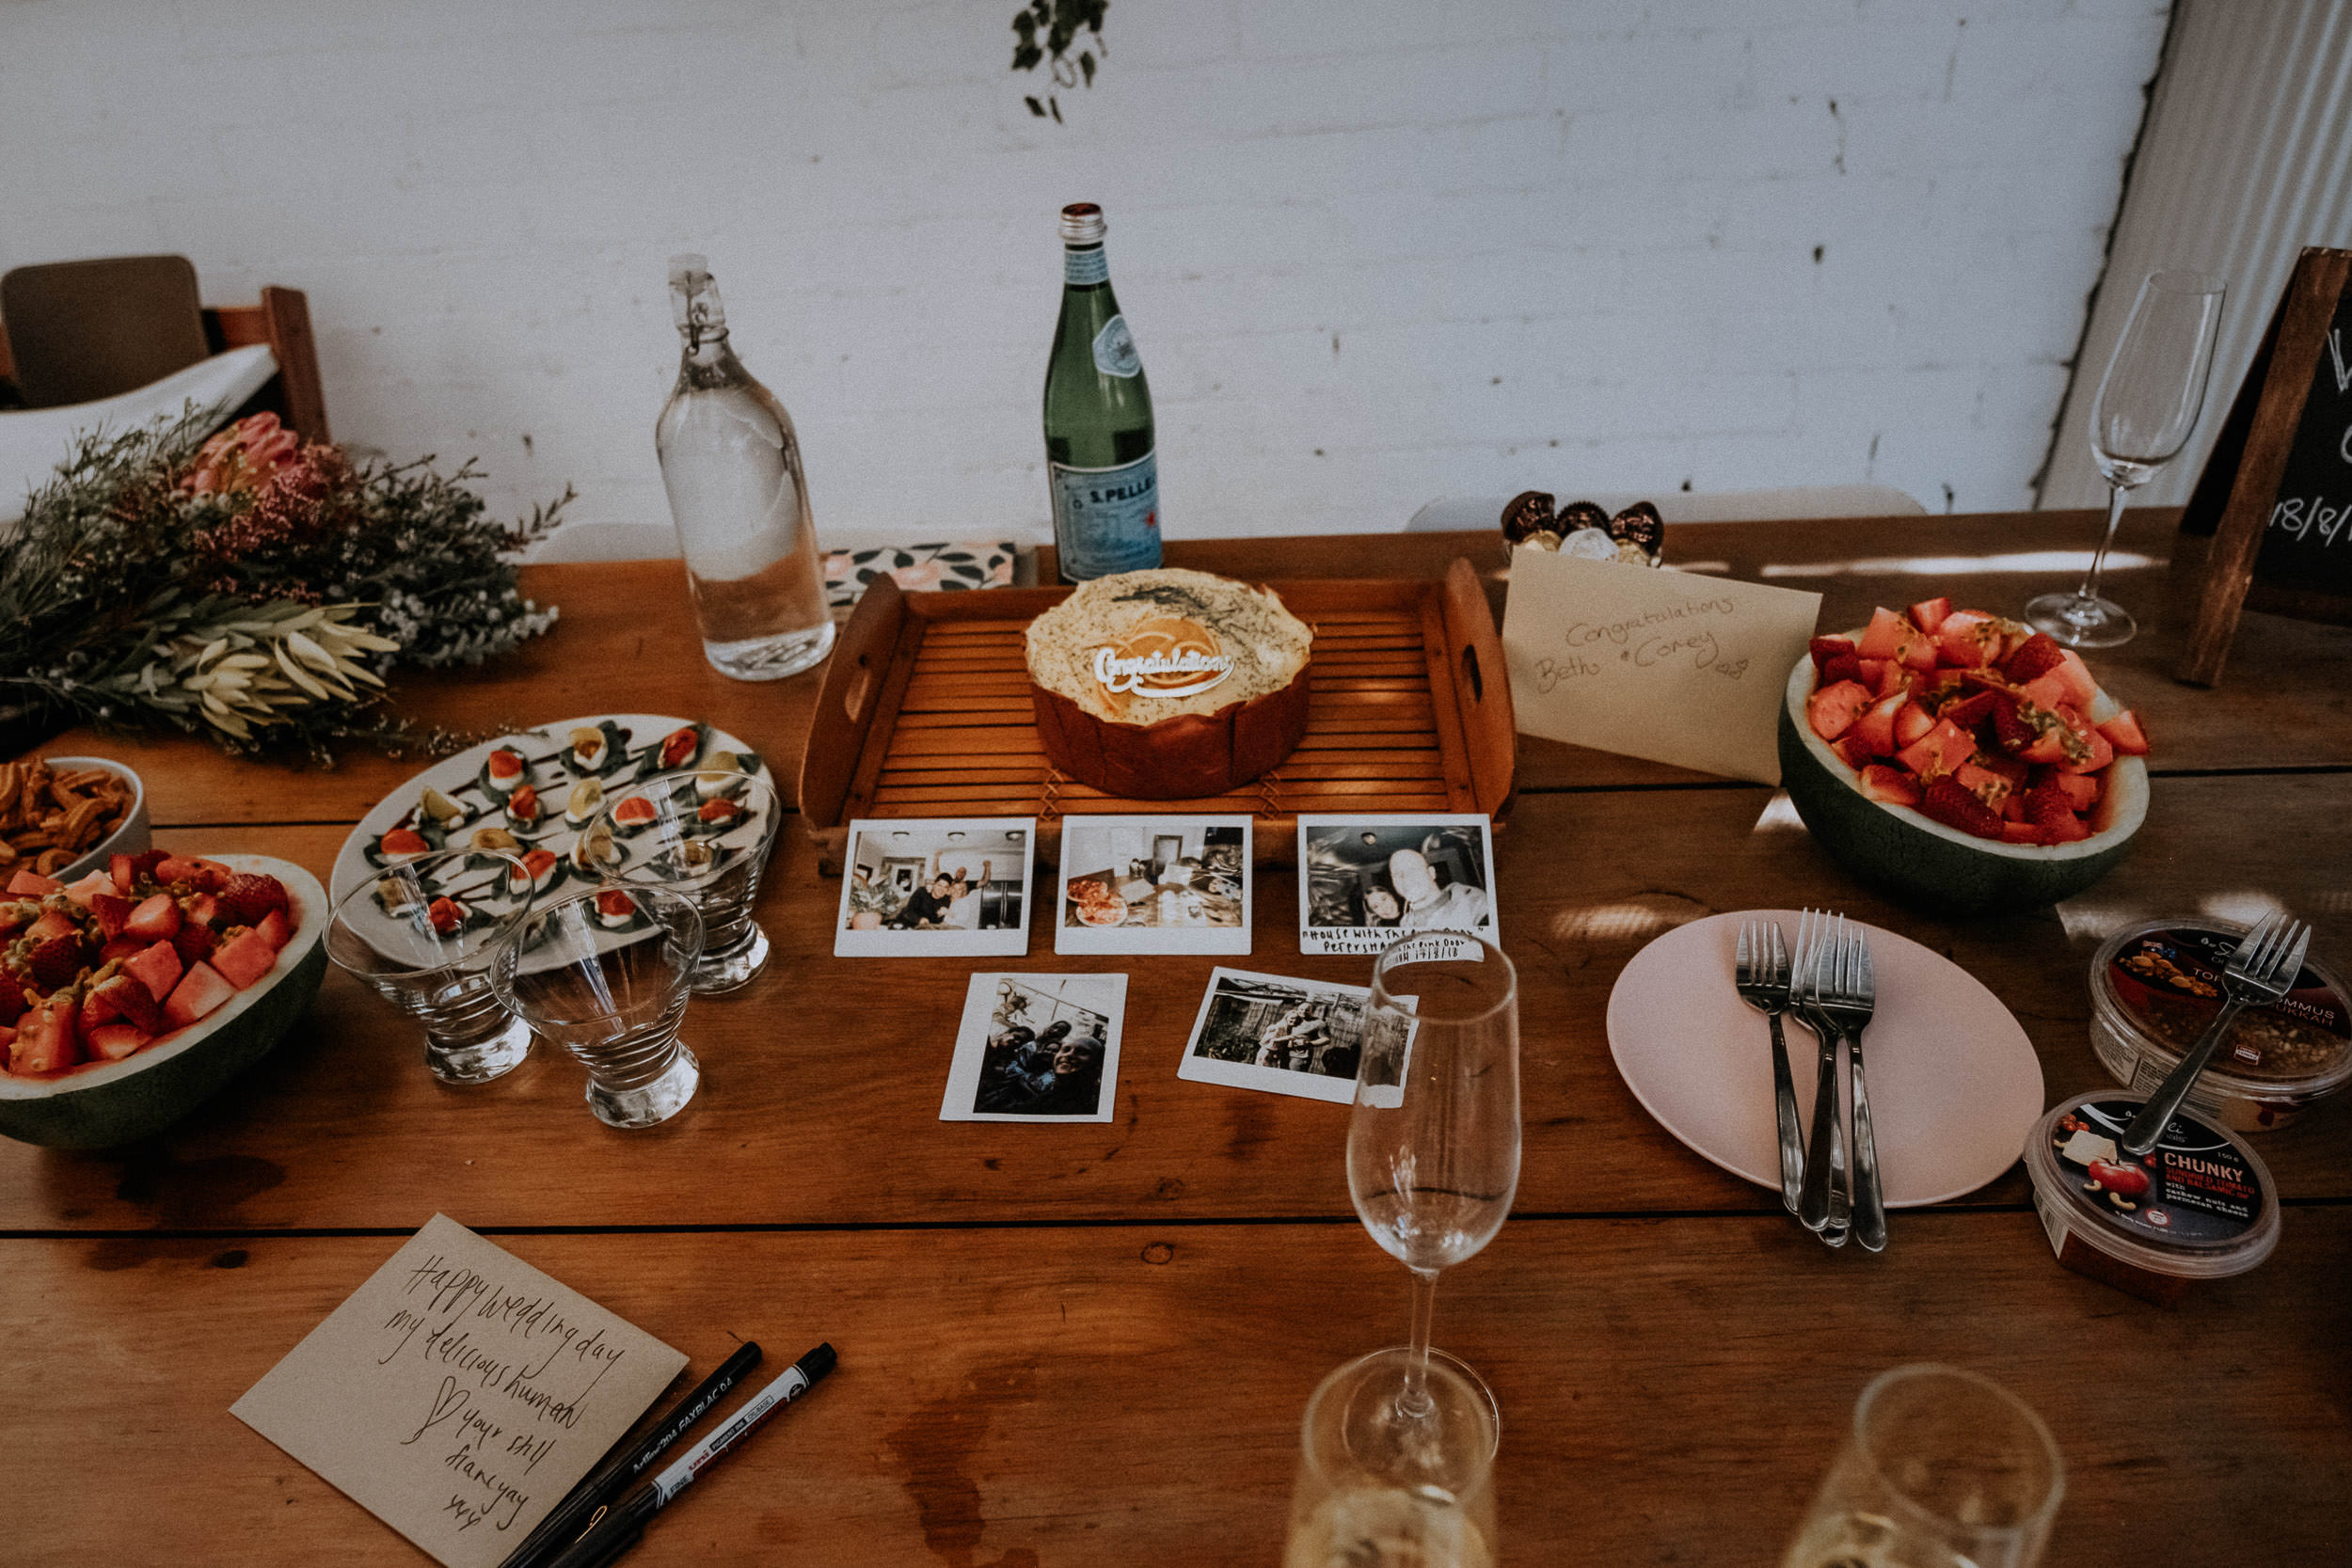 kings _ thieves - beth _ corey backyard airbnb elopement sydney - submission -215.jpg